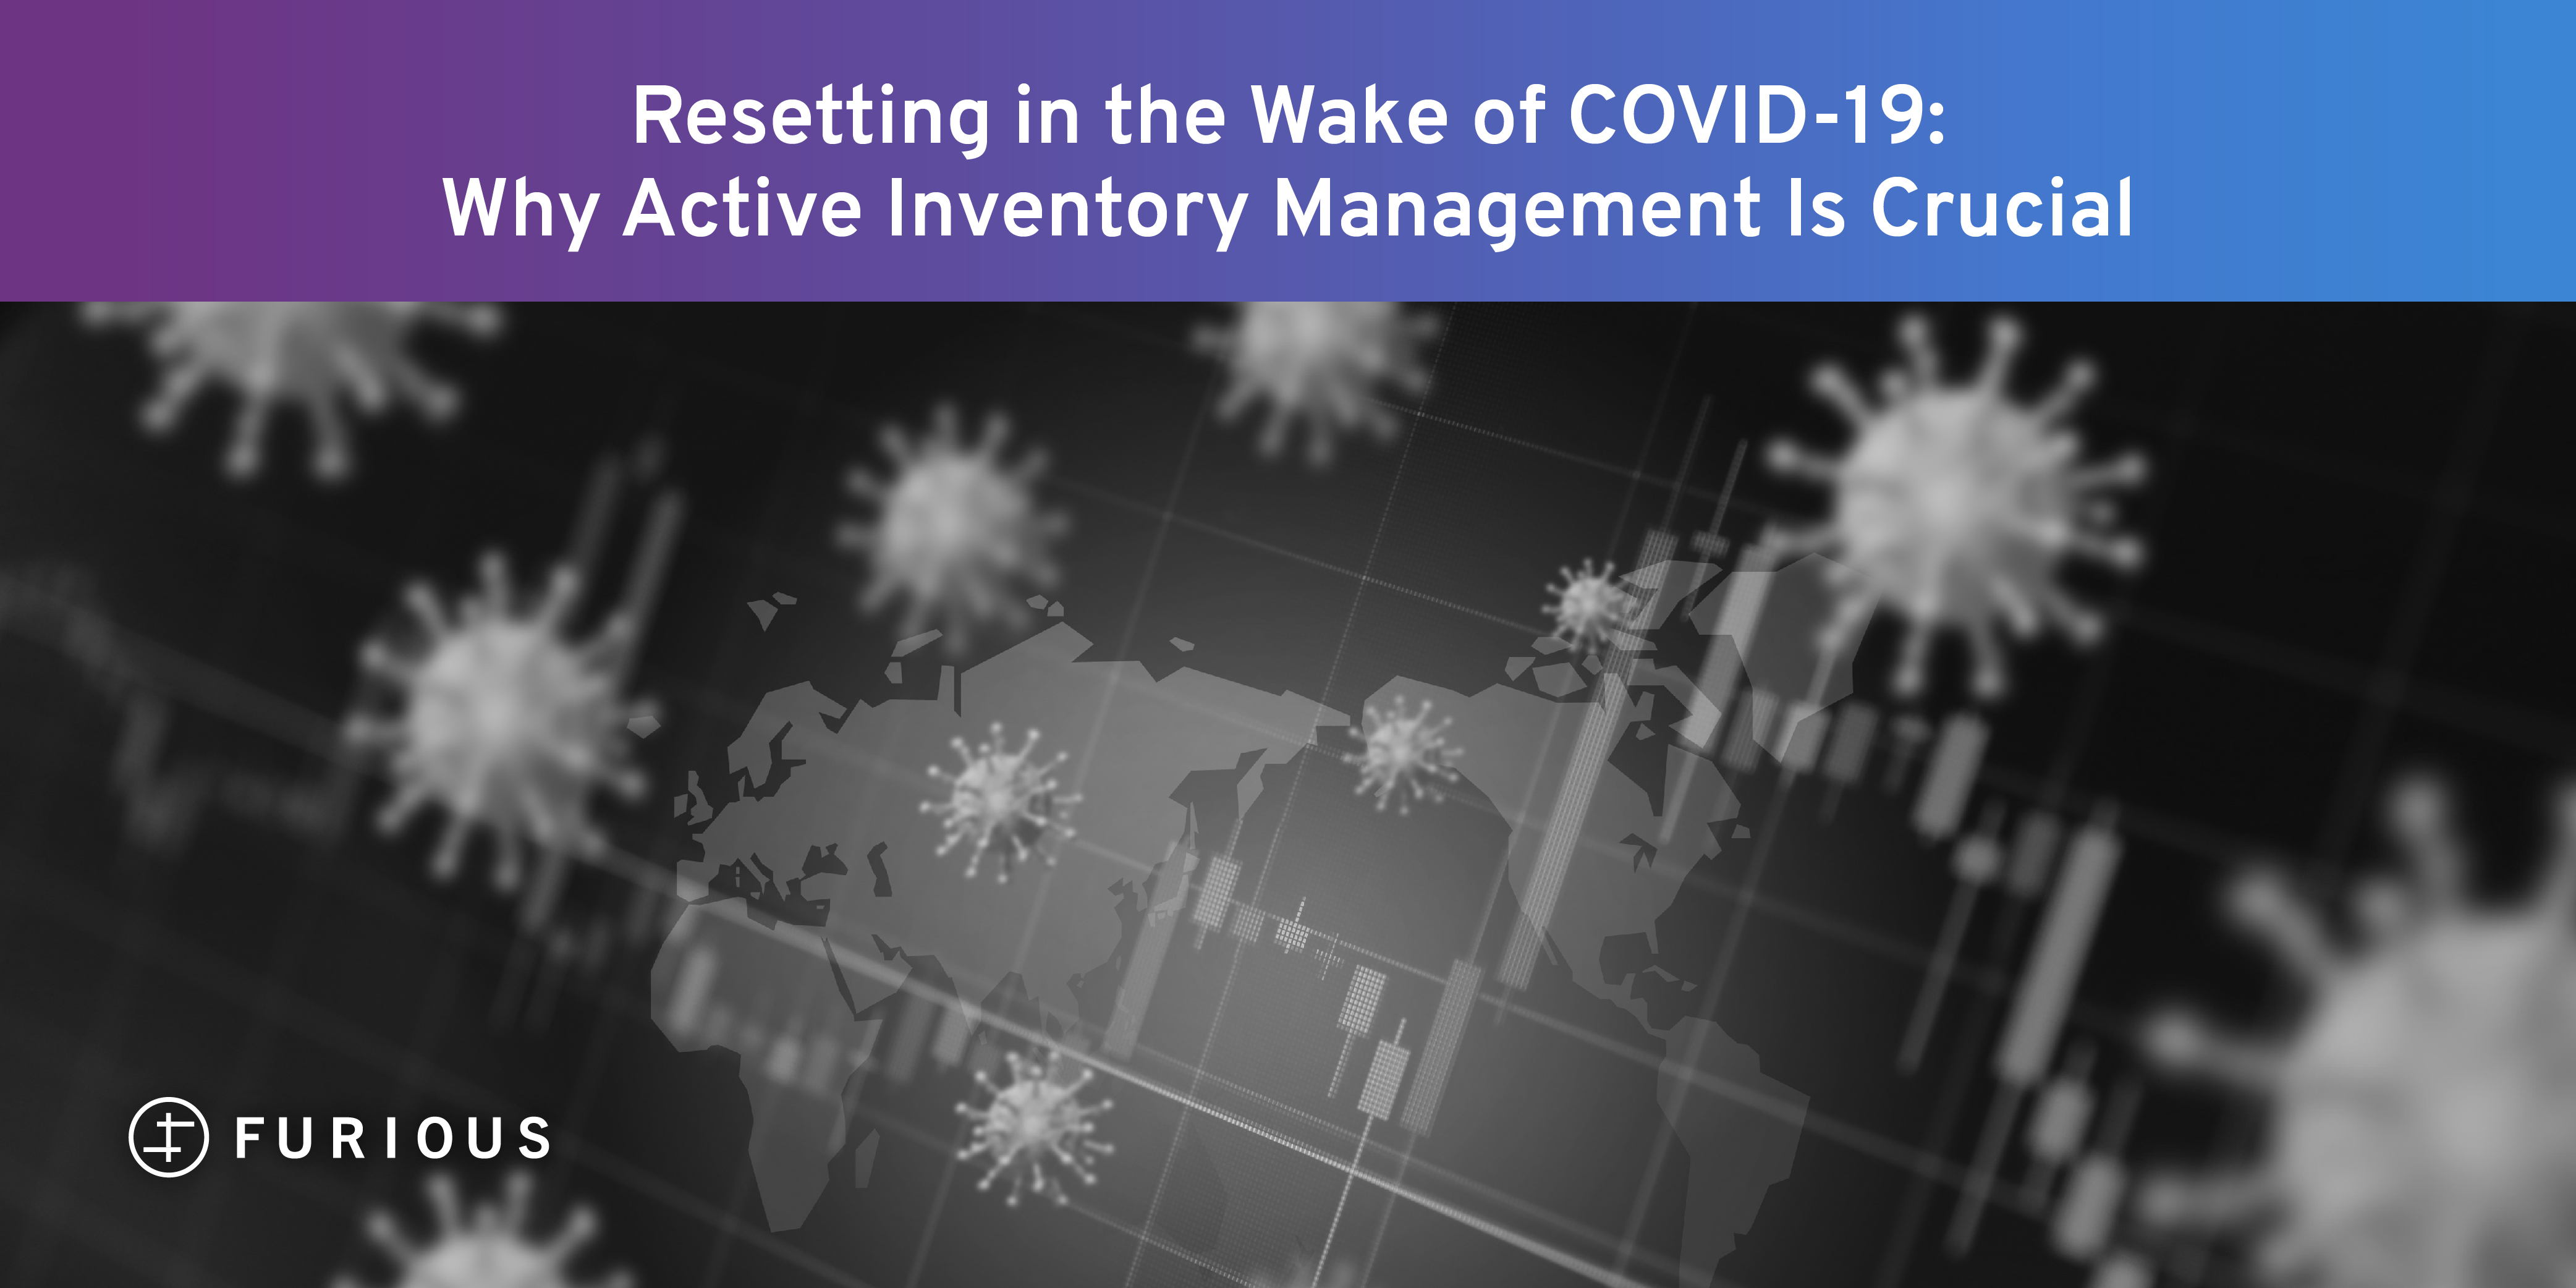 Resetting in the Wake of COVID-19: Why Active Inventory Management Is Crucial